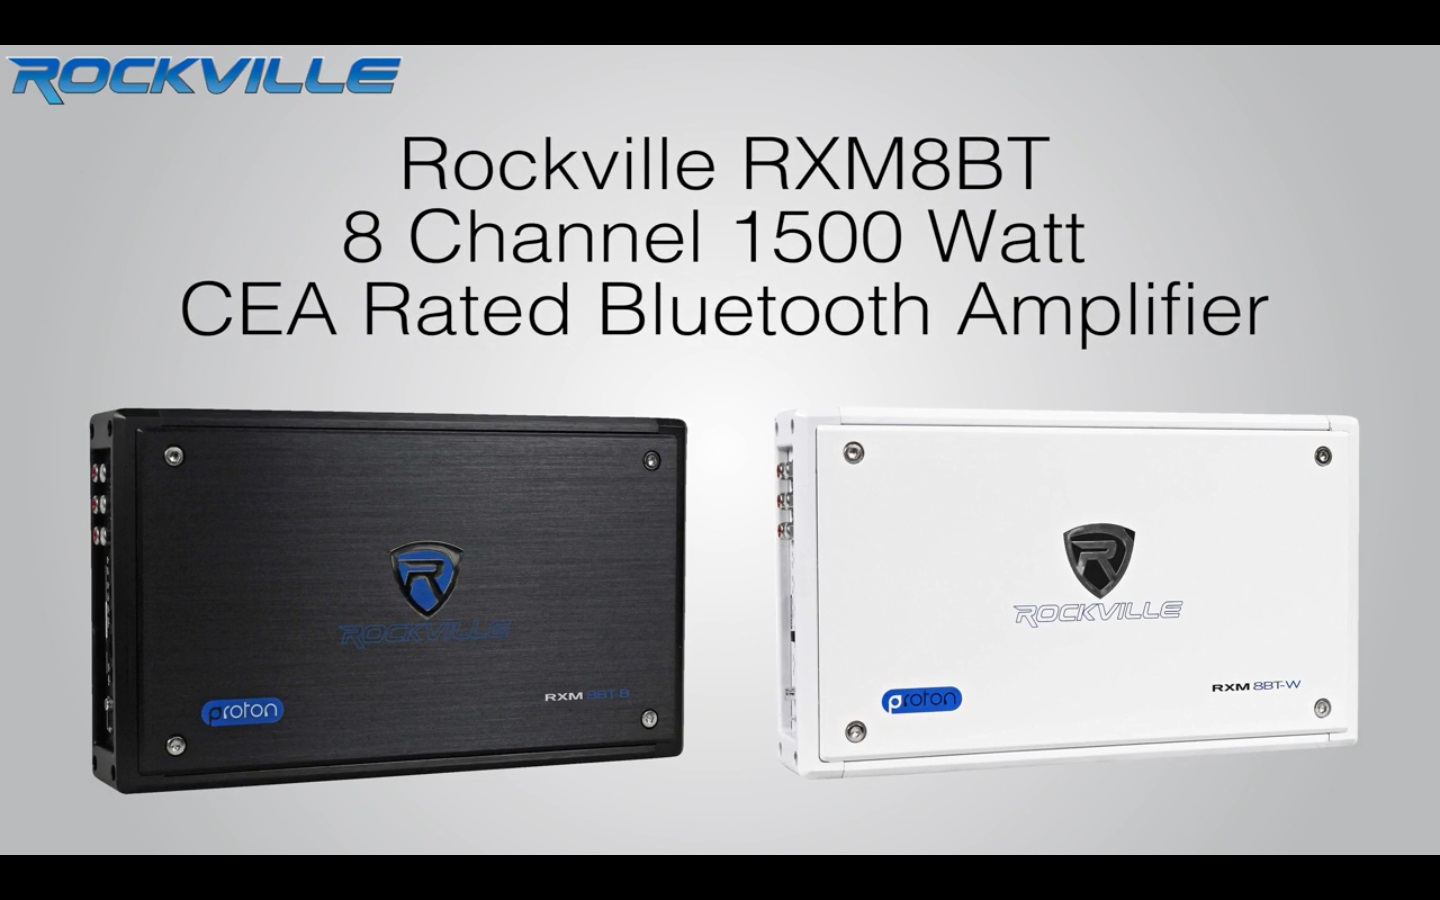 RXM8BT rockville rxm8btb 8 channel 1500 watt marine bluetooth amplifier w GMC Factory Stereo Wiring Diagrams at webbmarketing.co